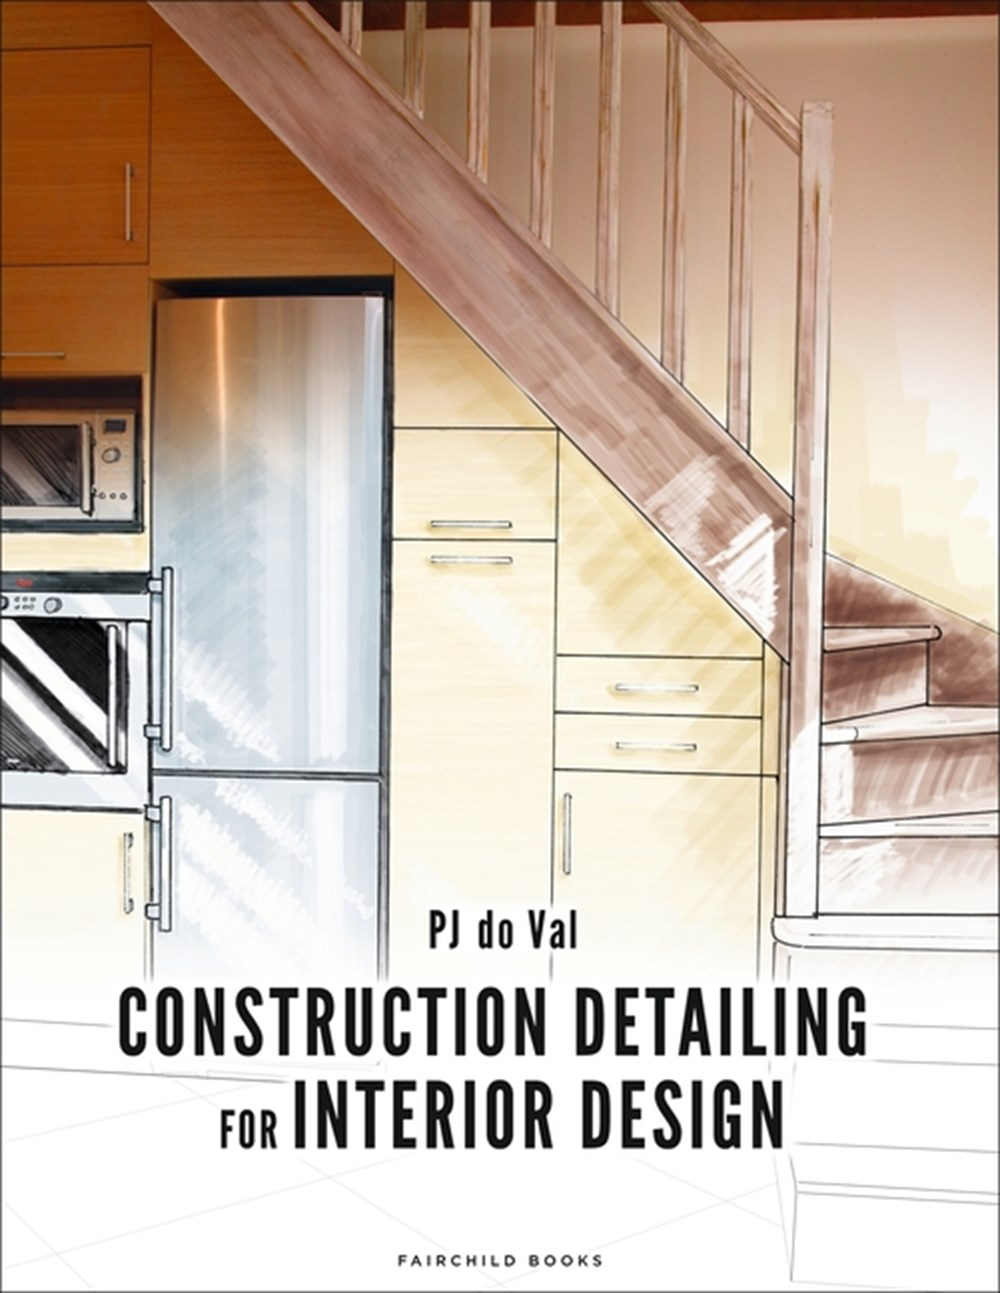 Construction Detailing for Interior Design Bundle Book + Studio Access Card [With Access Code]